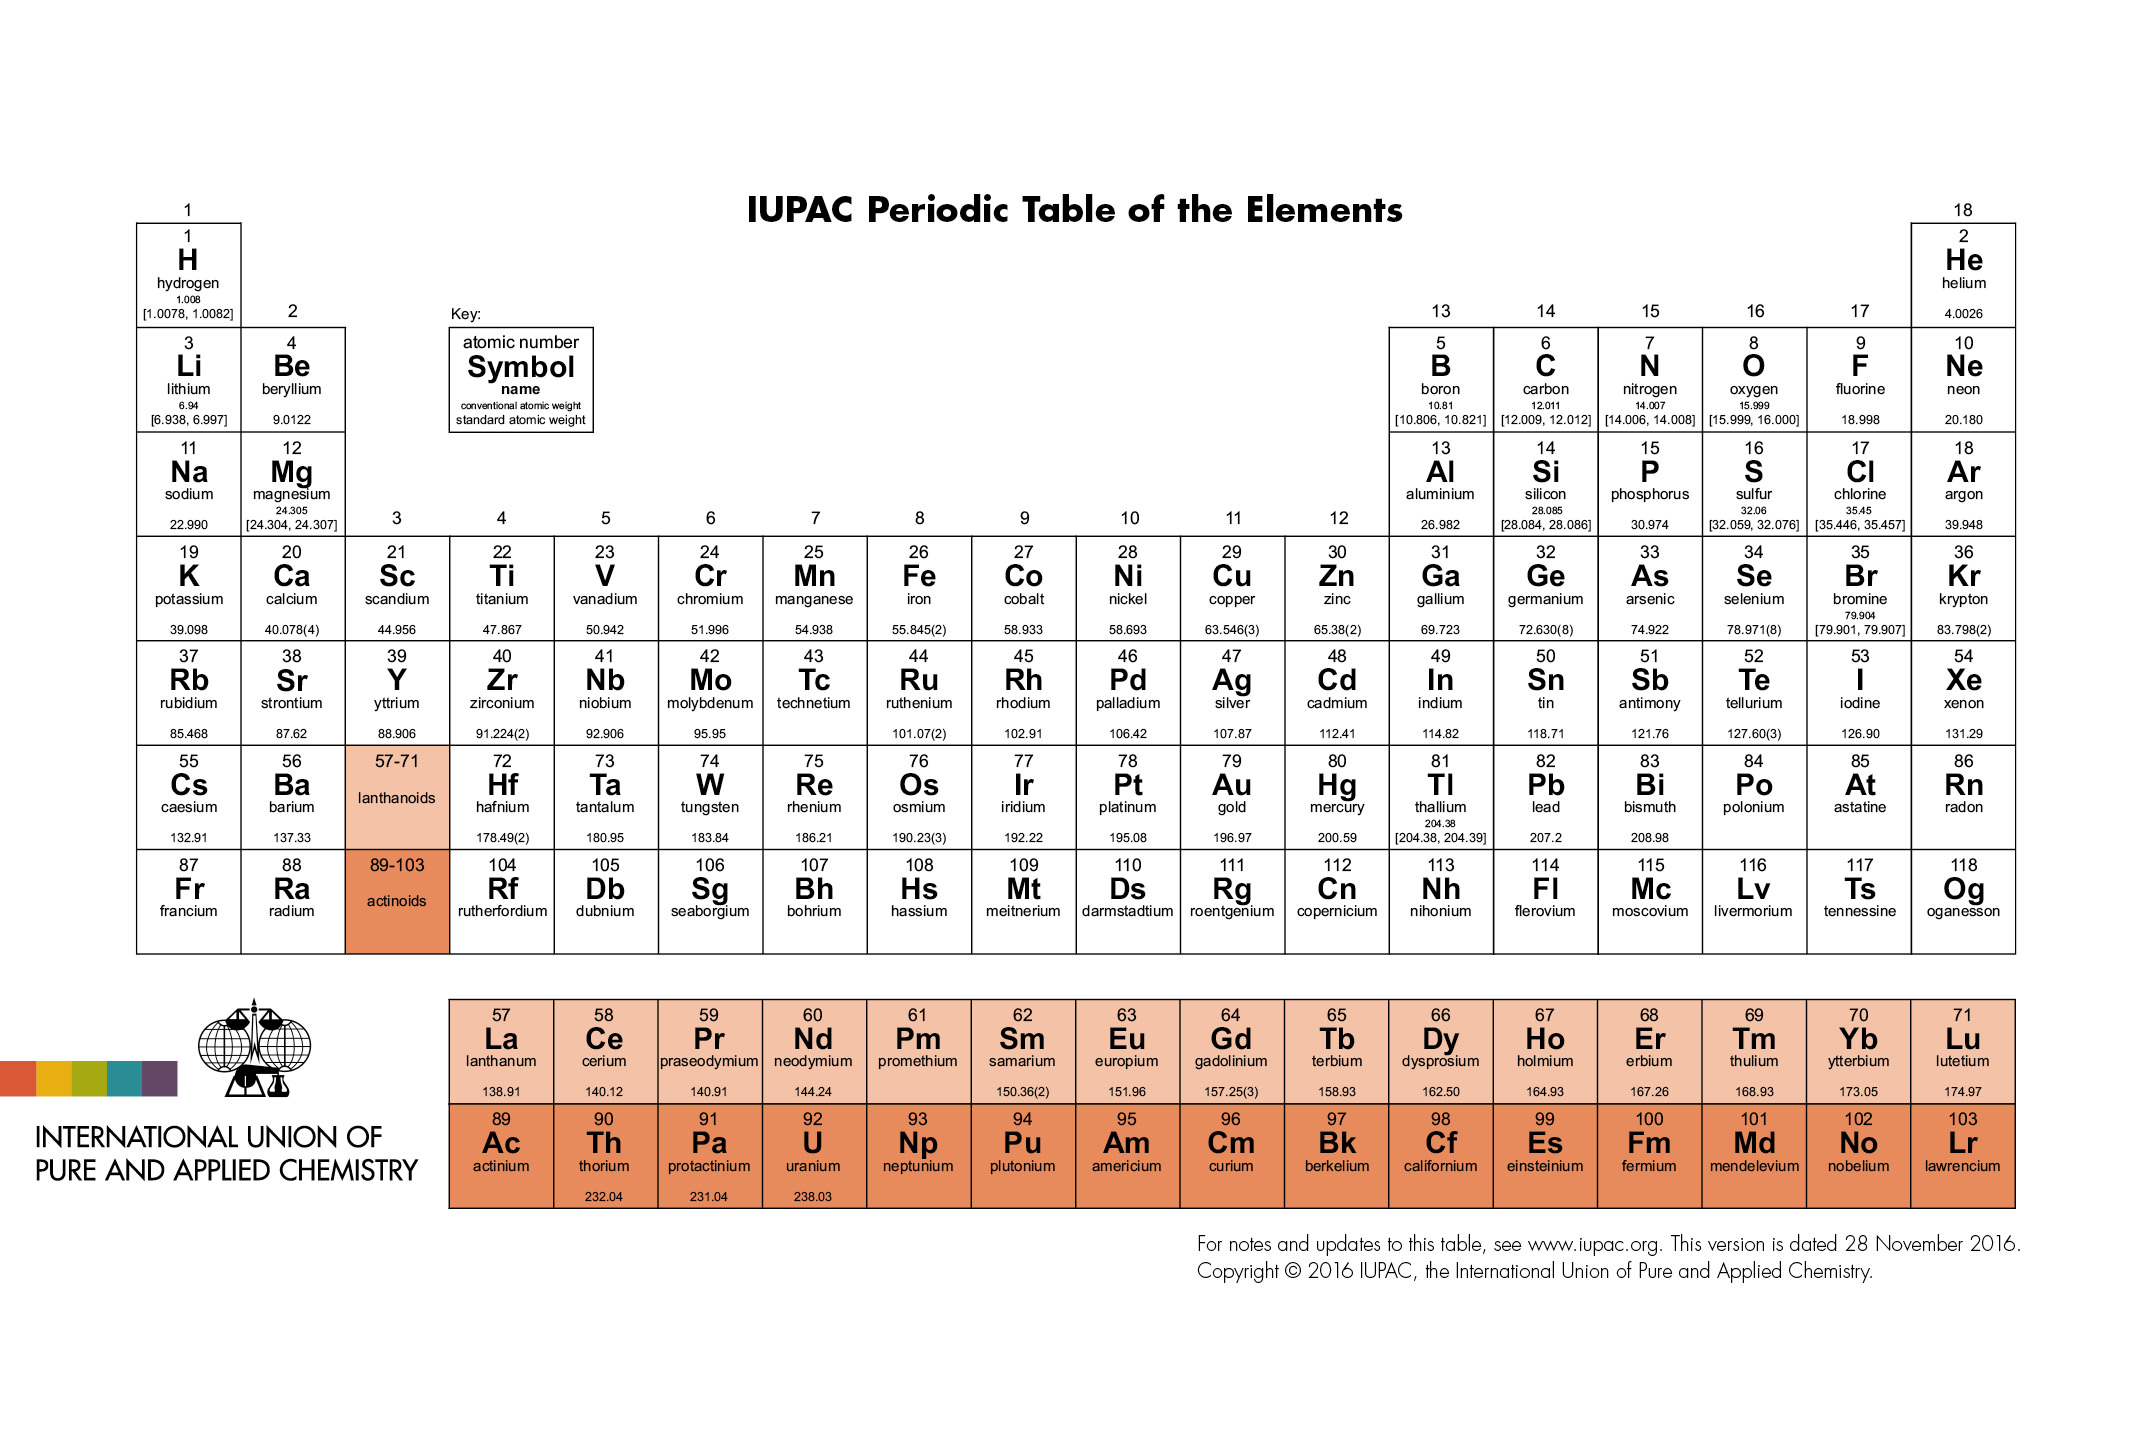 Periodic Table of Elements IUPAC | International Union of Pure